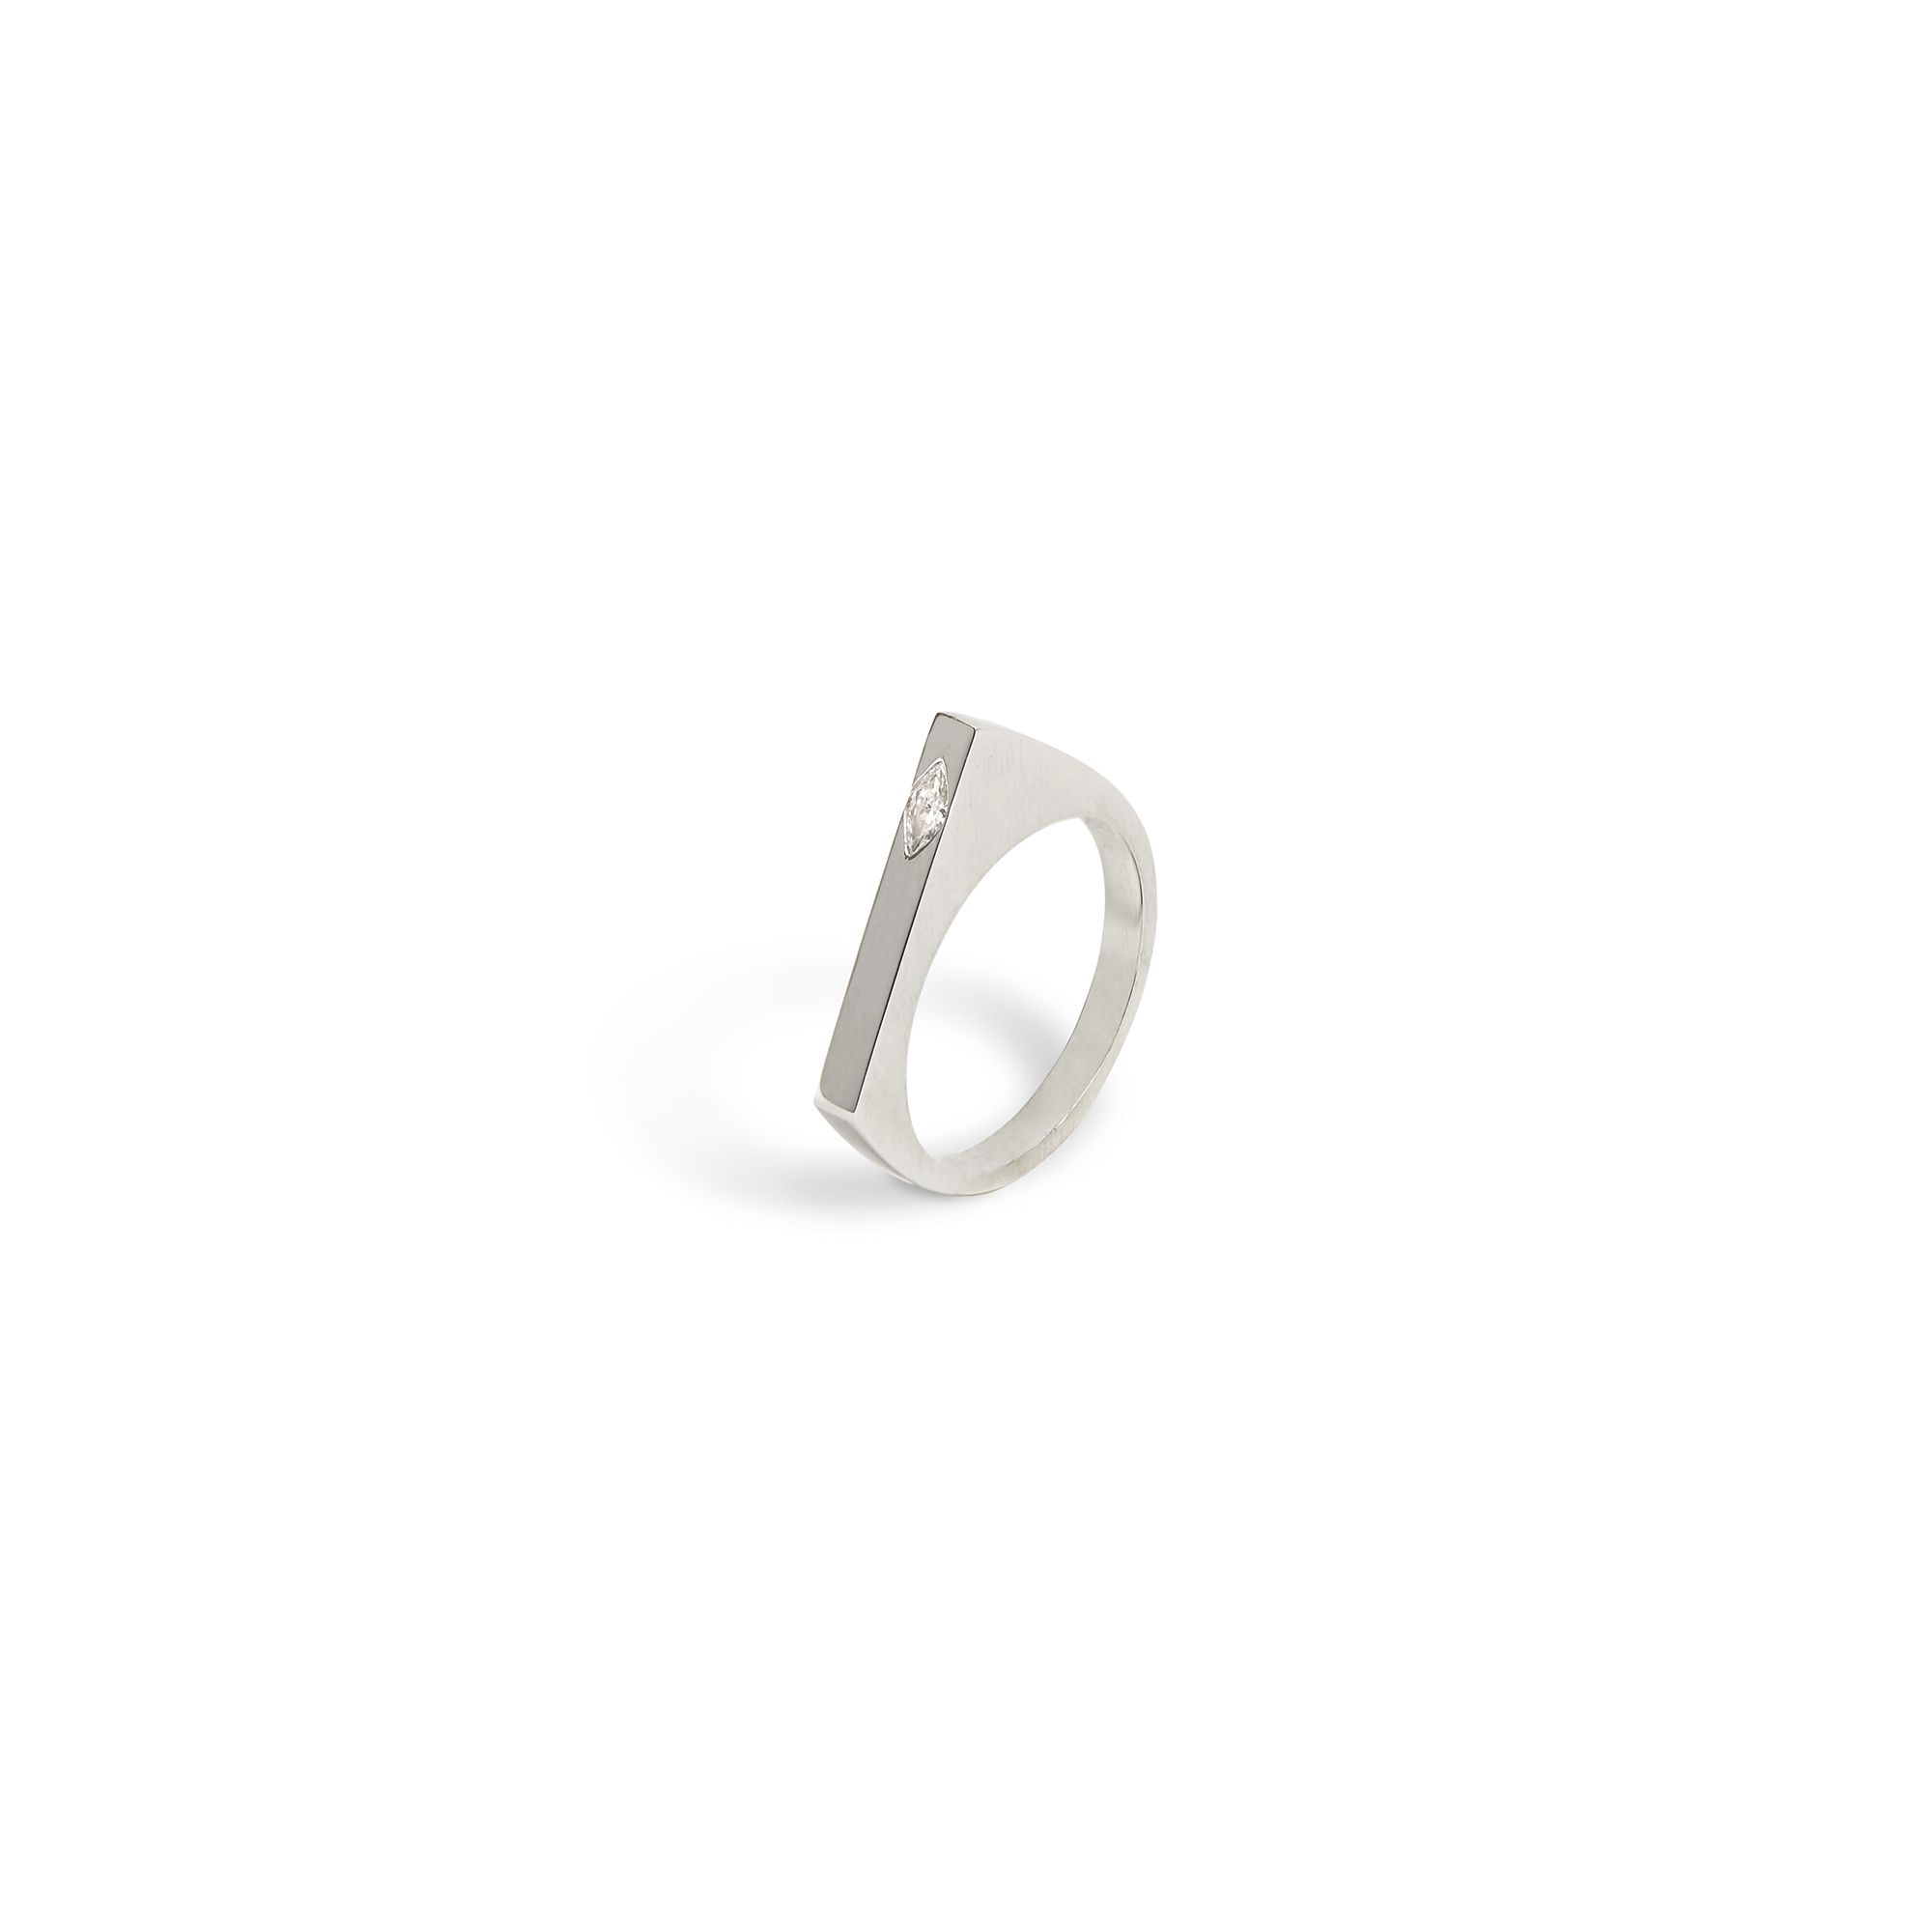 Modular 'Congiunzioni' point ring with marquise Ring in white gold and marquise diamond